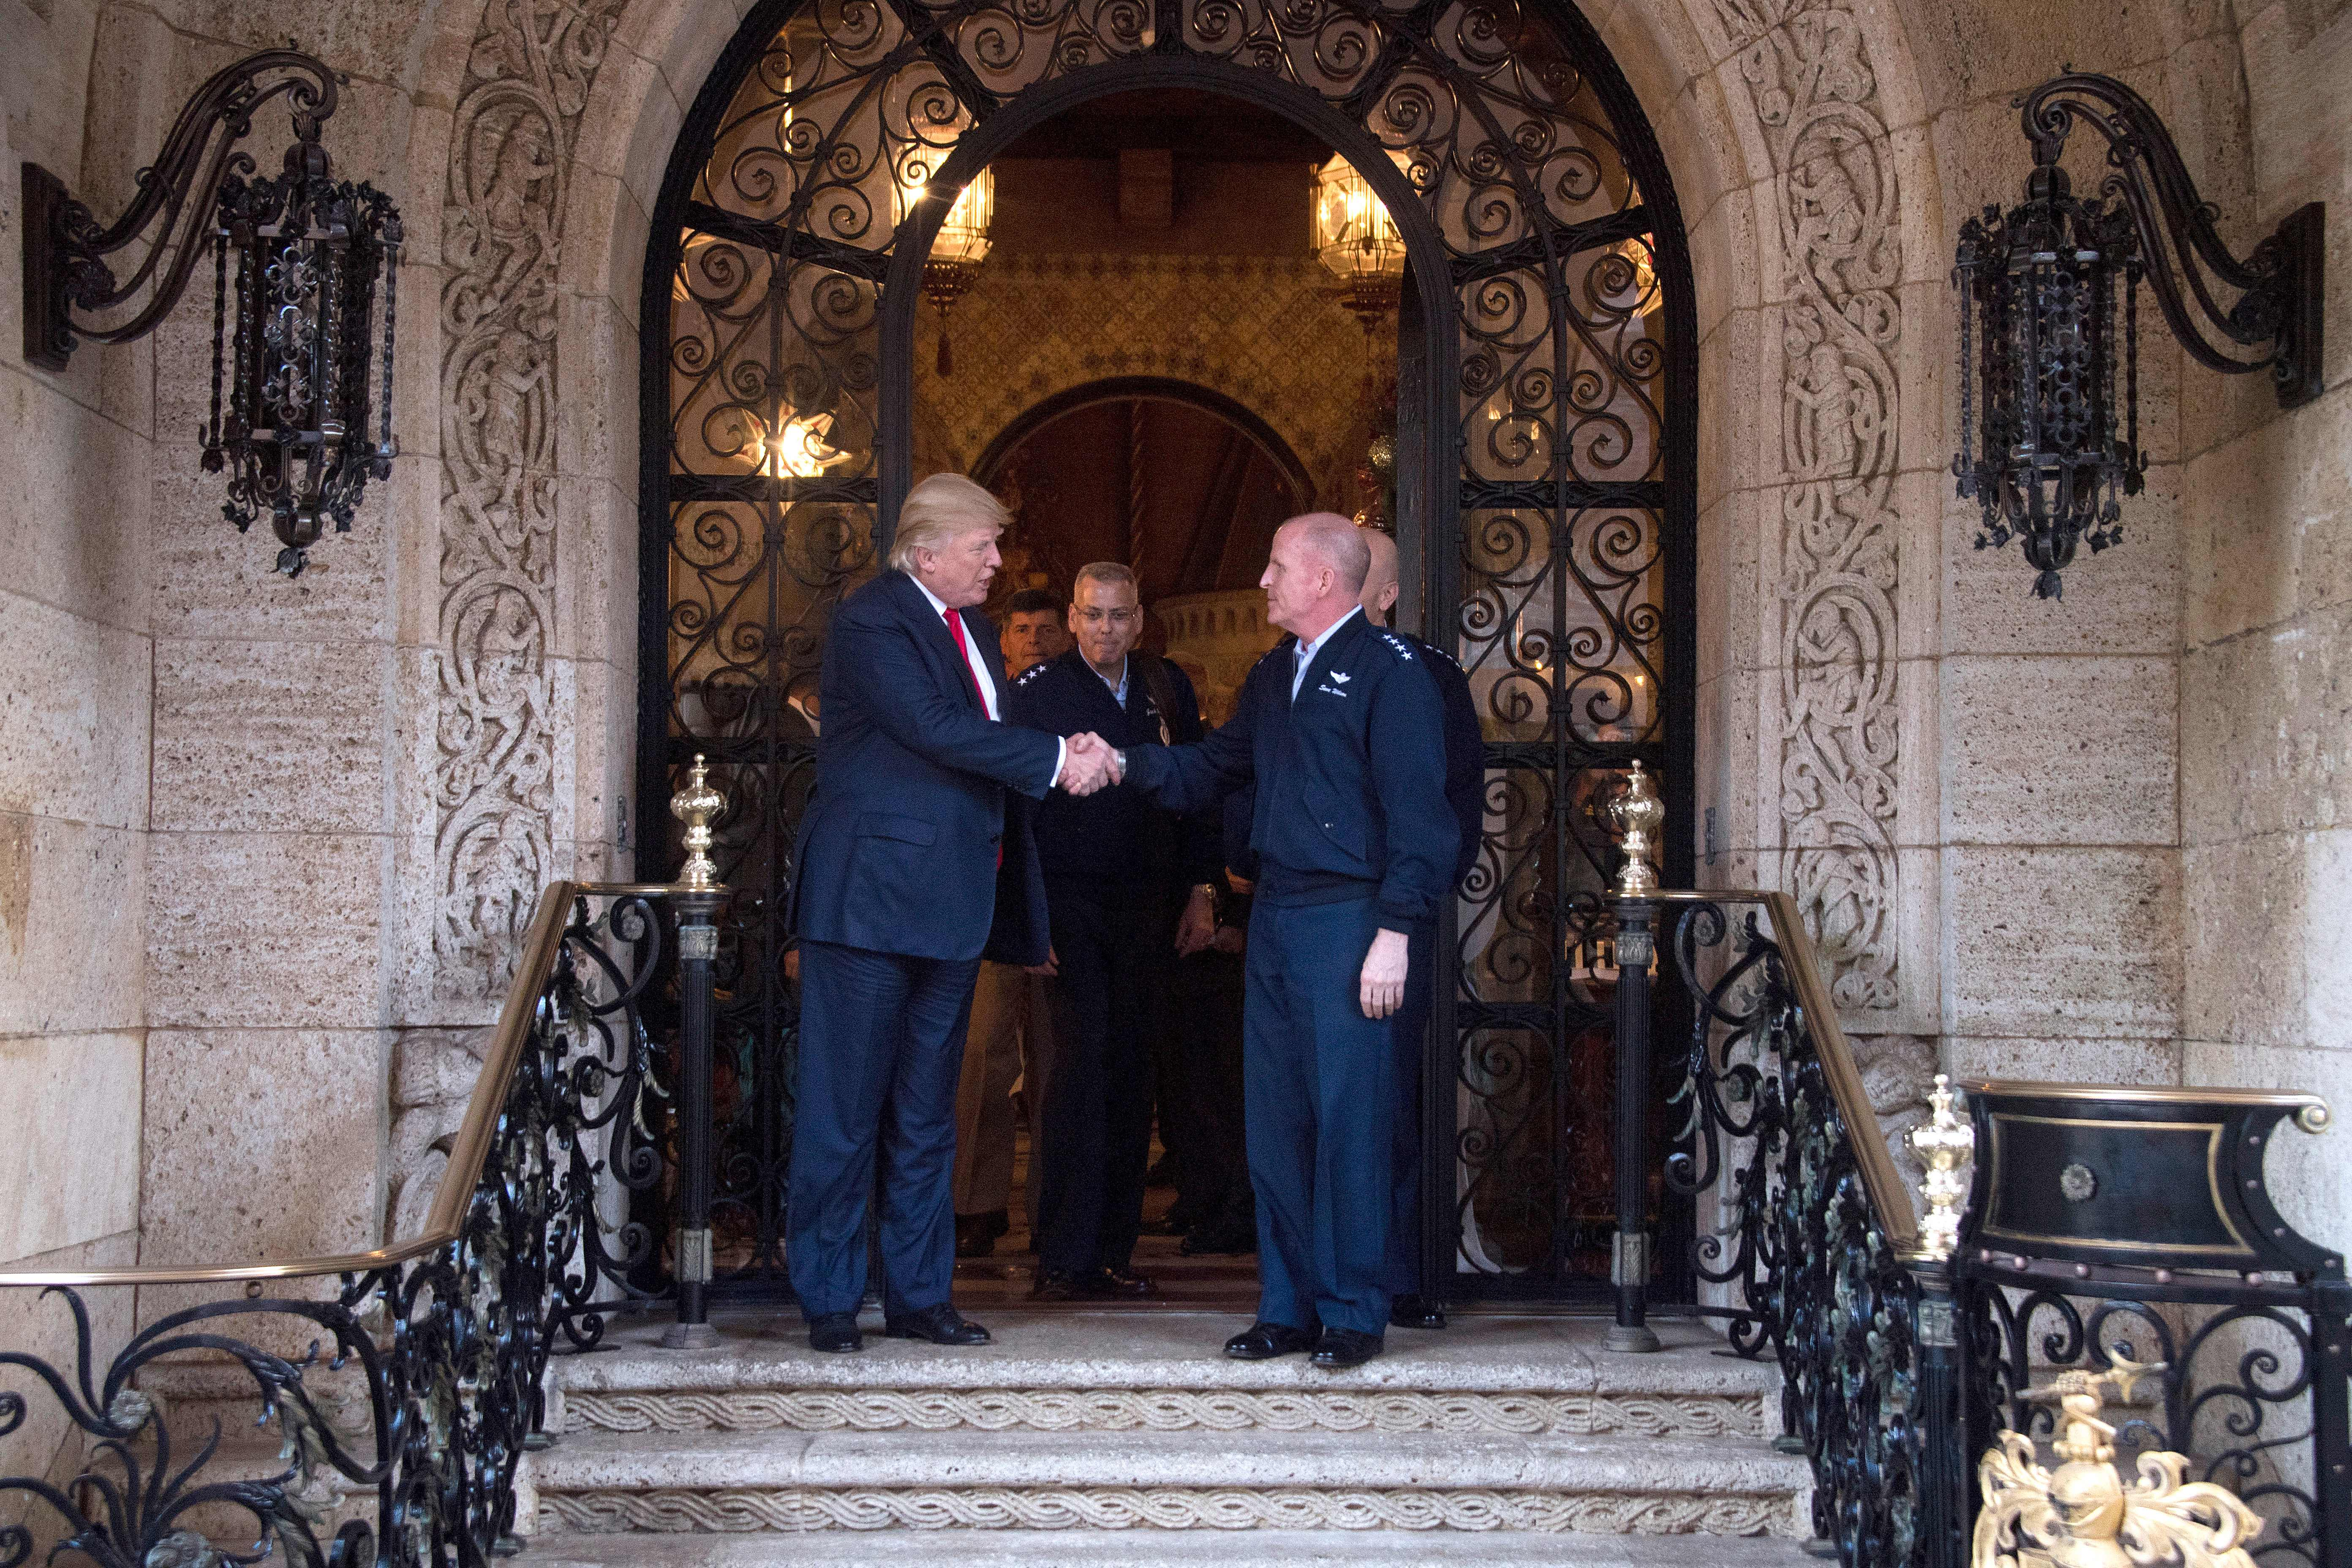 President-elect Donald Trump shakes hands with military leadership following meetings at Mar-a-Lago in Palm Beach, Florida, on Dec. 21, 2016.